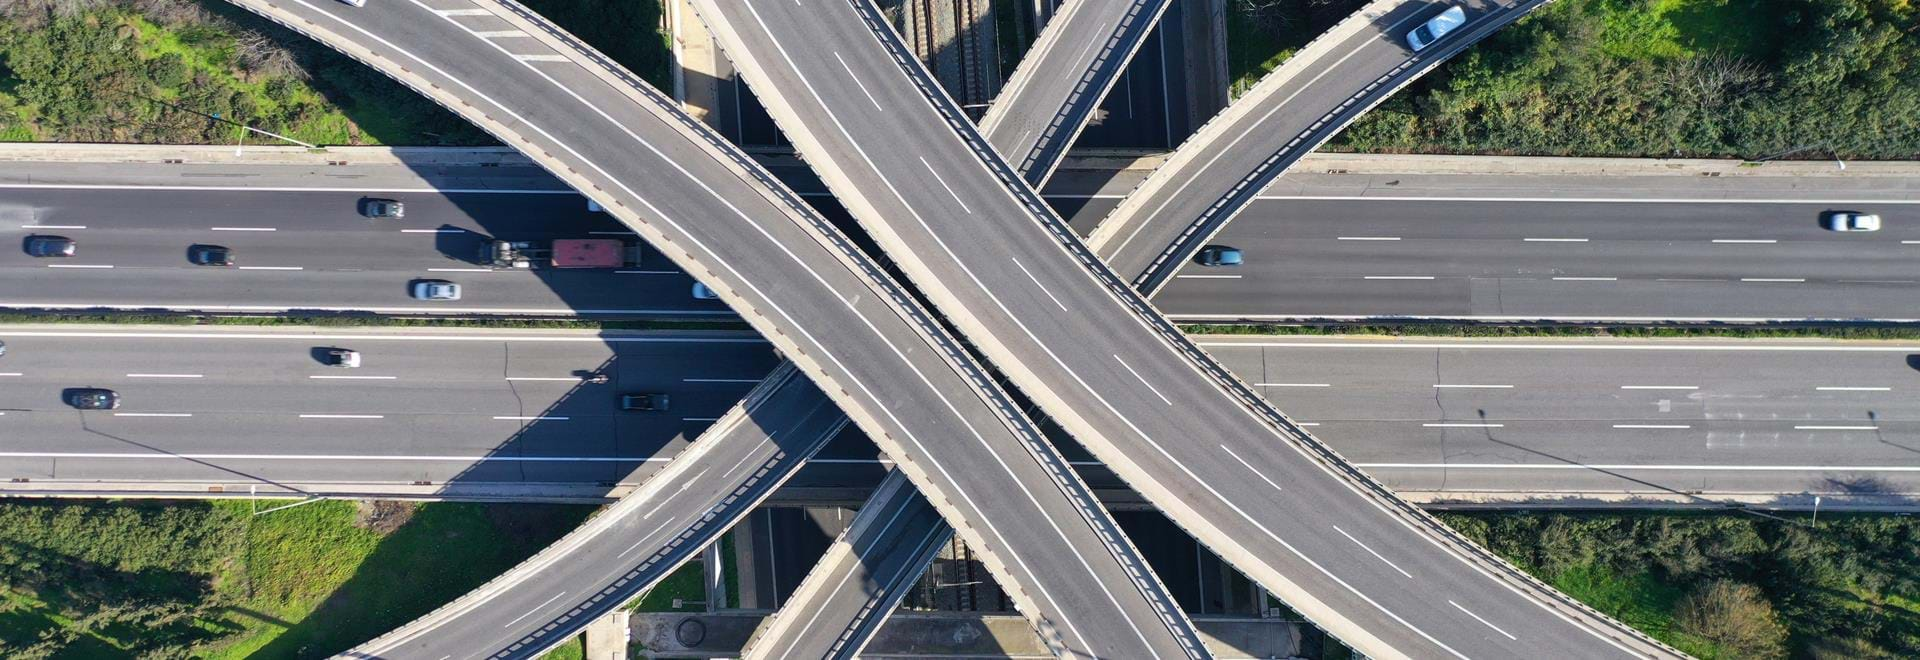 Aerial view of motorway interchange